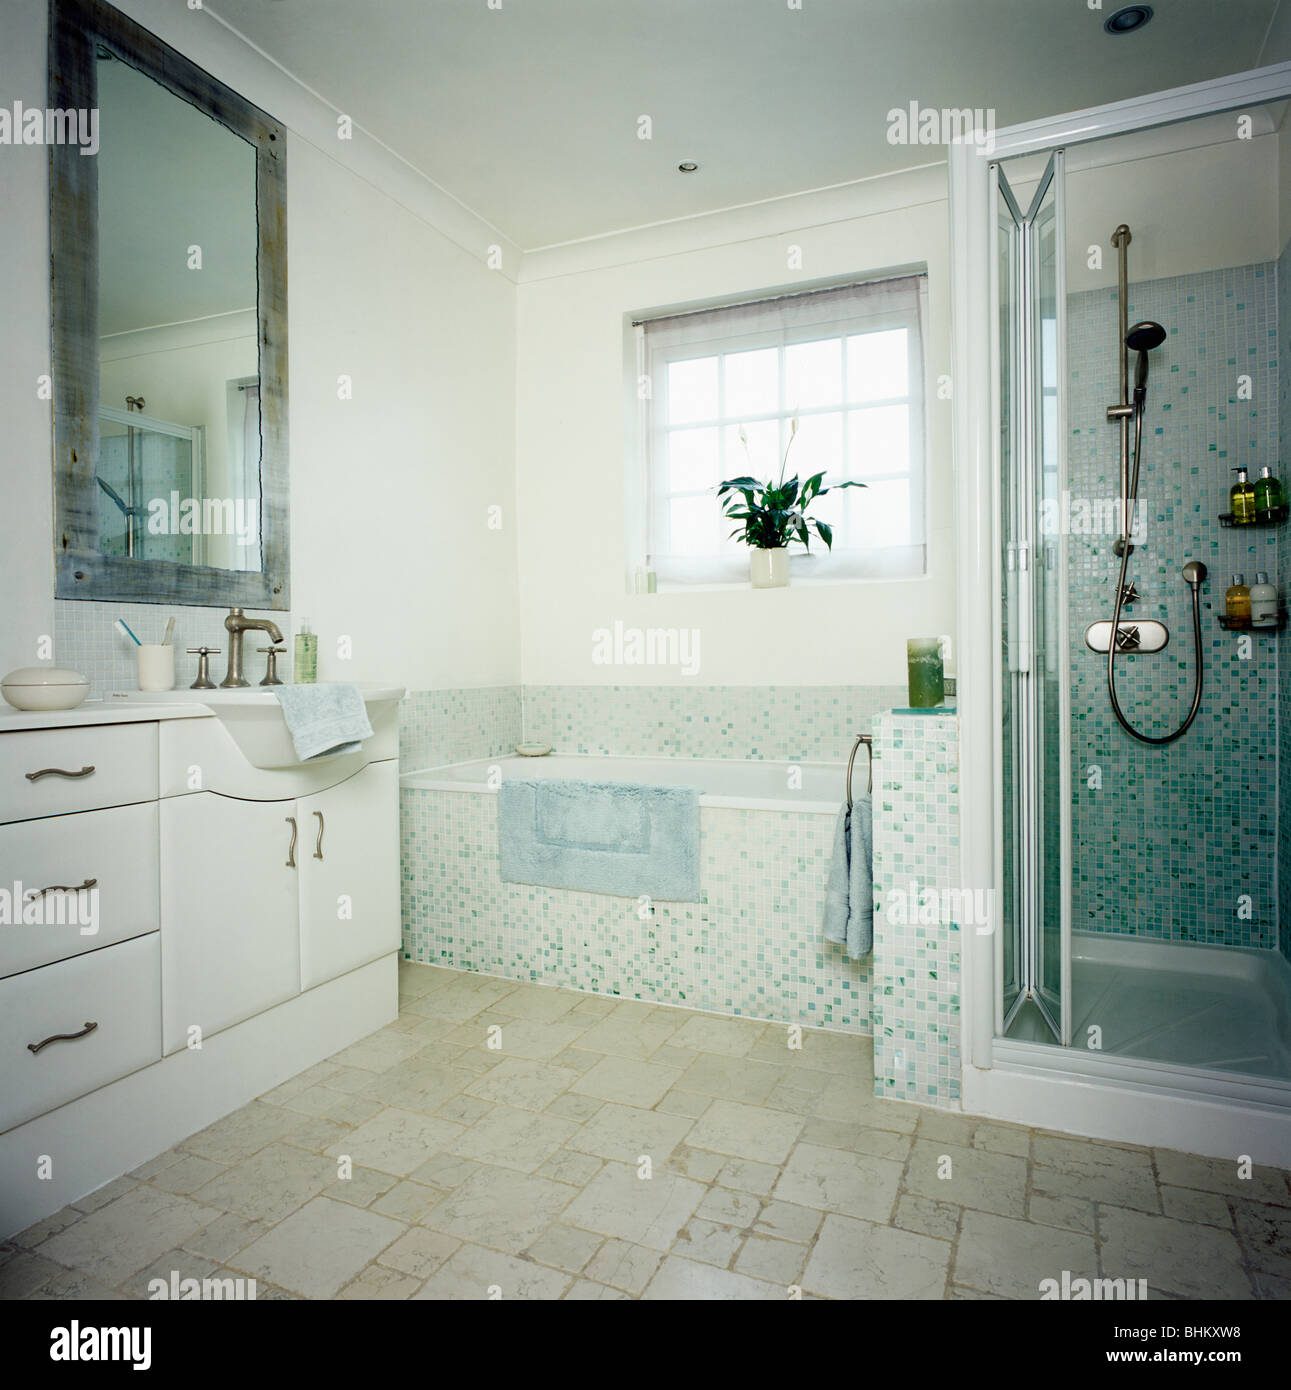 Mosaic tiled bath in modern white bathroom with shower cabinet and ...